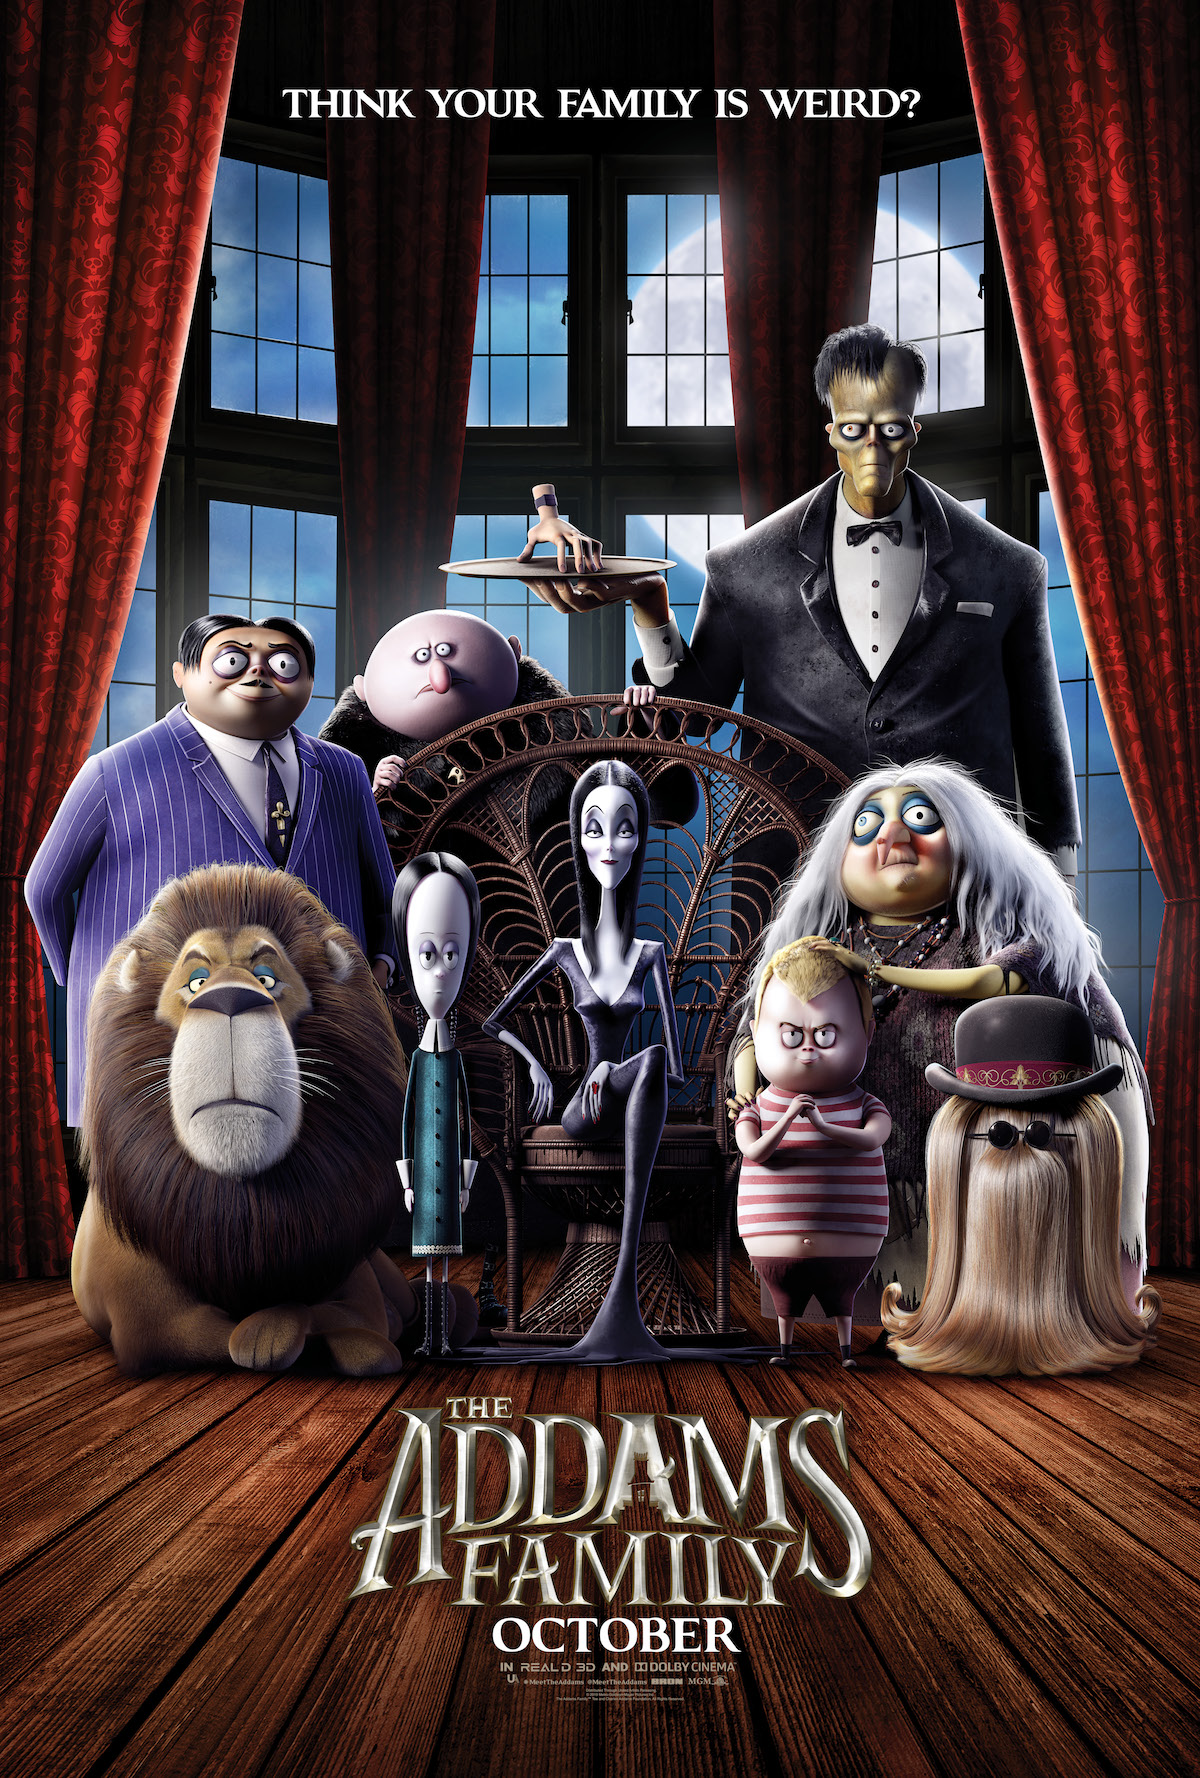 Rodzina Addamsów / The Addams Family (2019) [480p] [BRRip.XviD-LTN] [AC-3] [Dubbing PL]